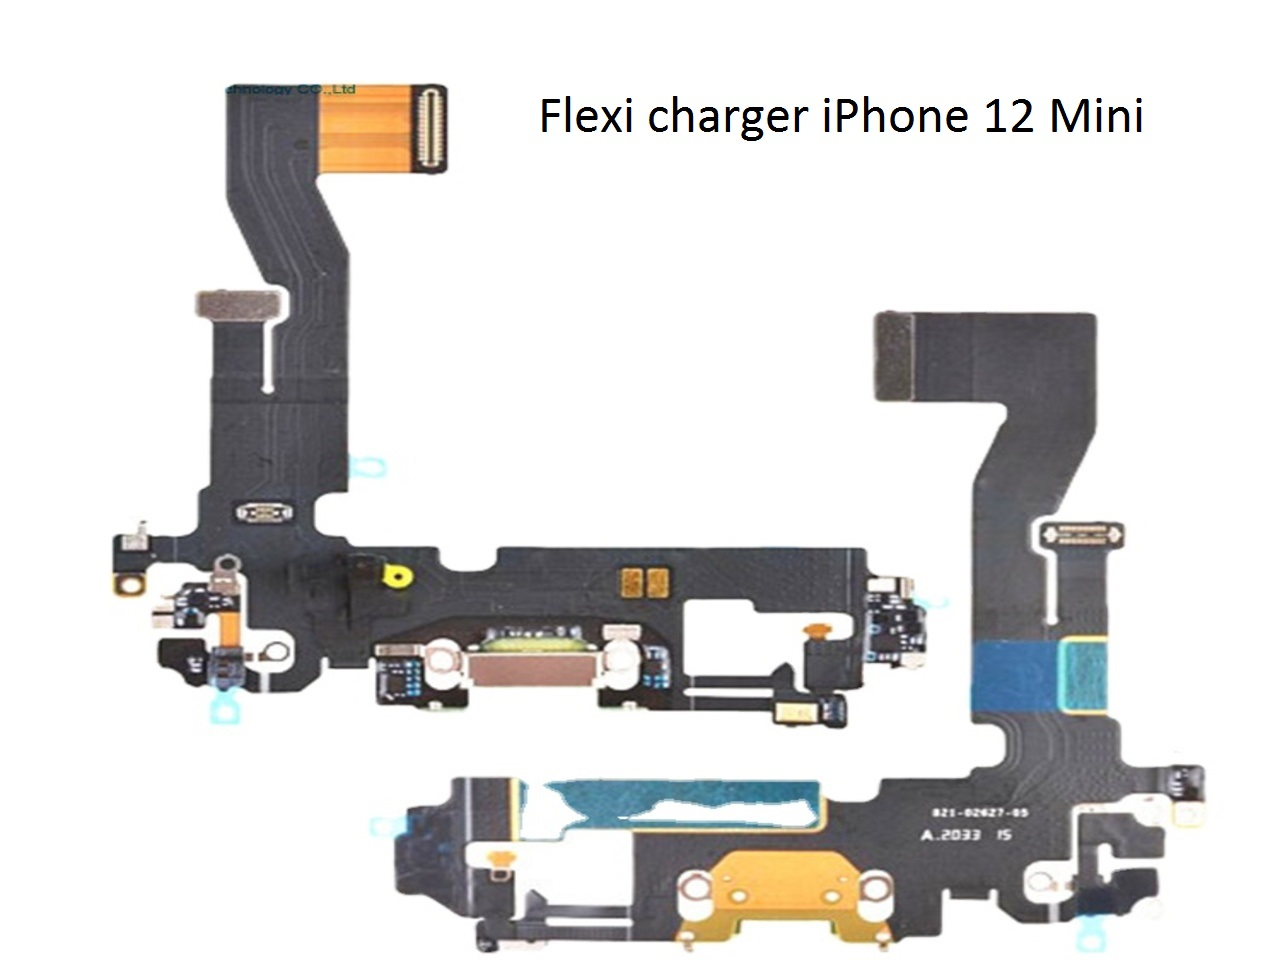 flexi charger iphone 12 mini